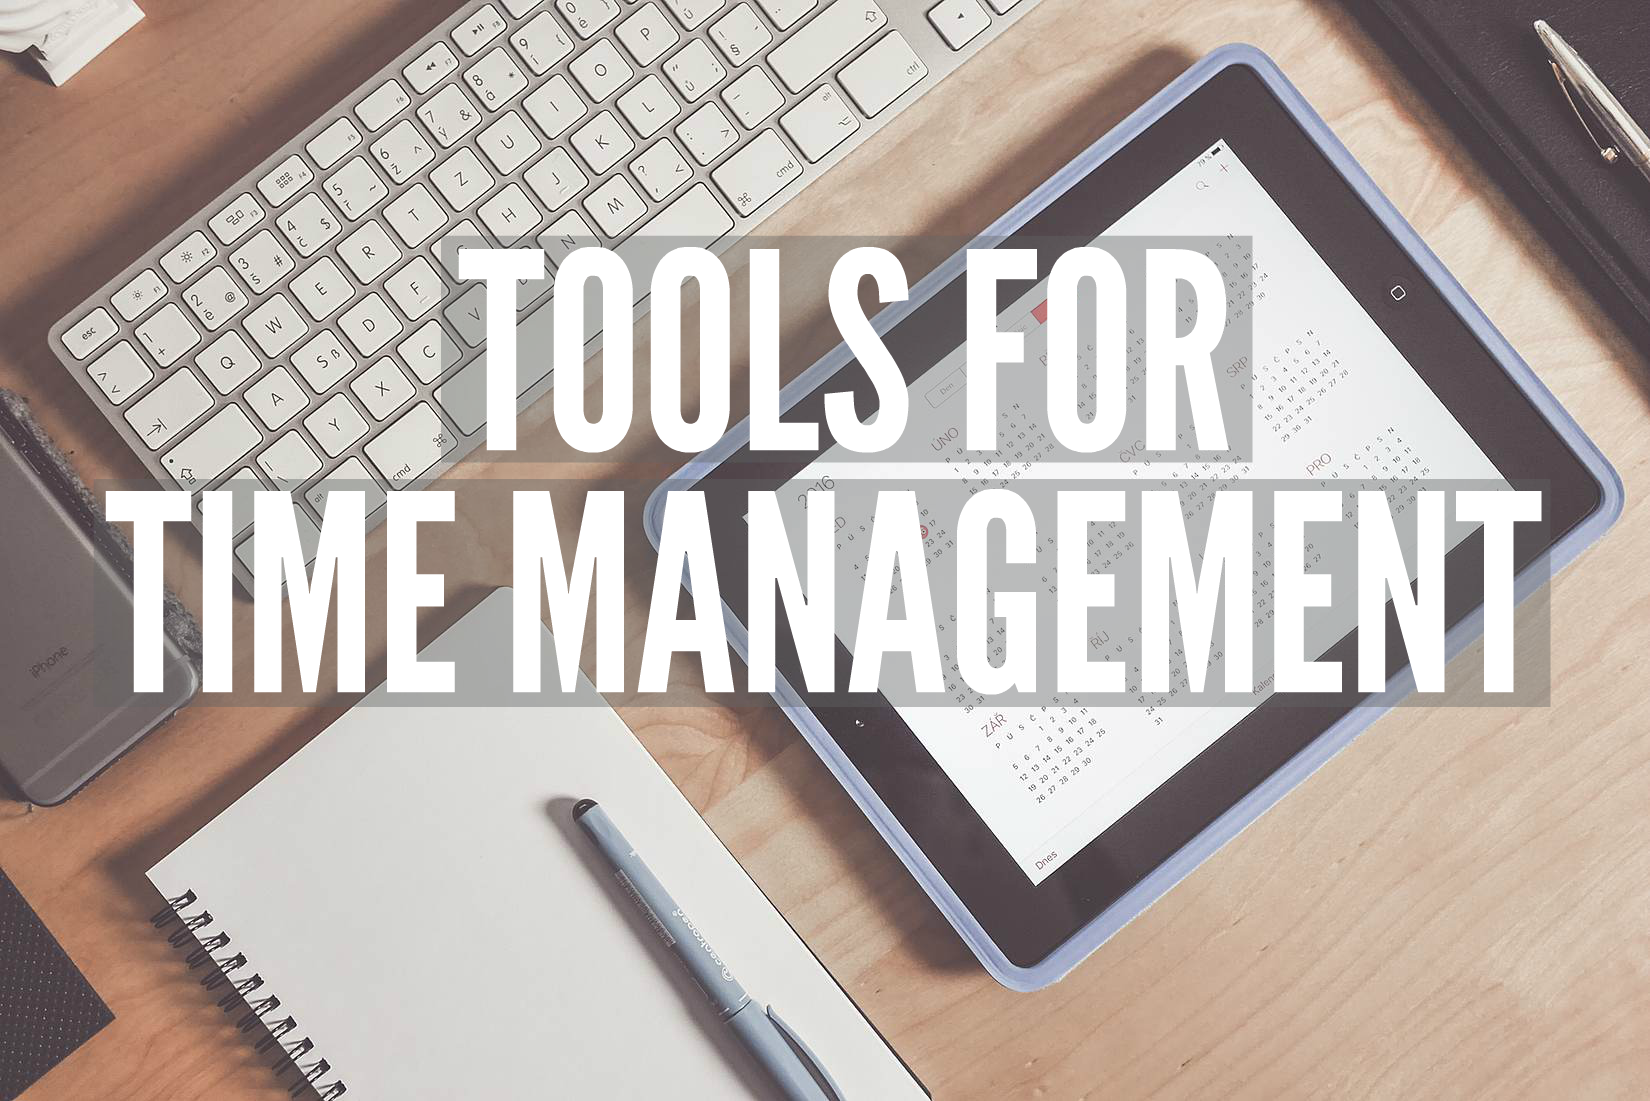 Tools for Time Management | Smarter Surfaces